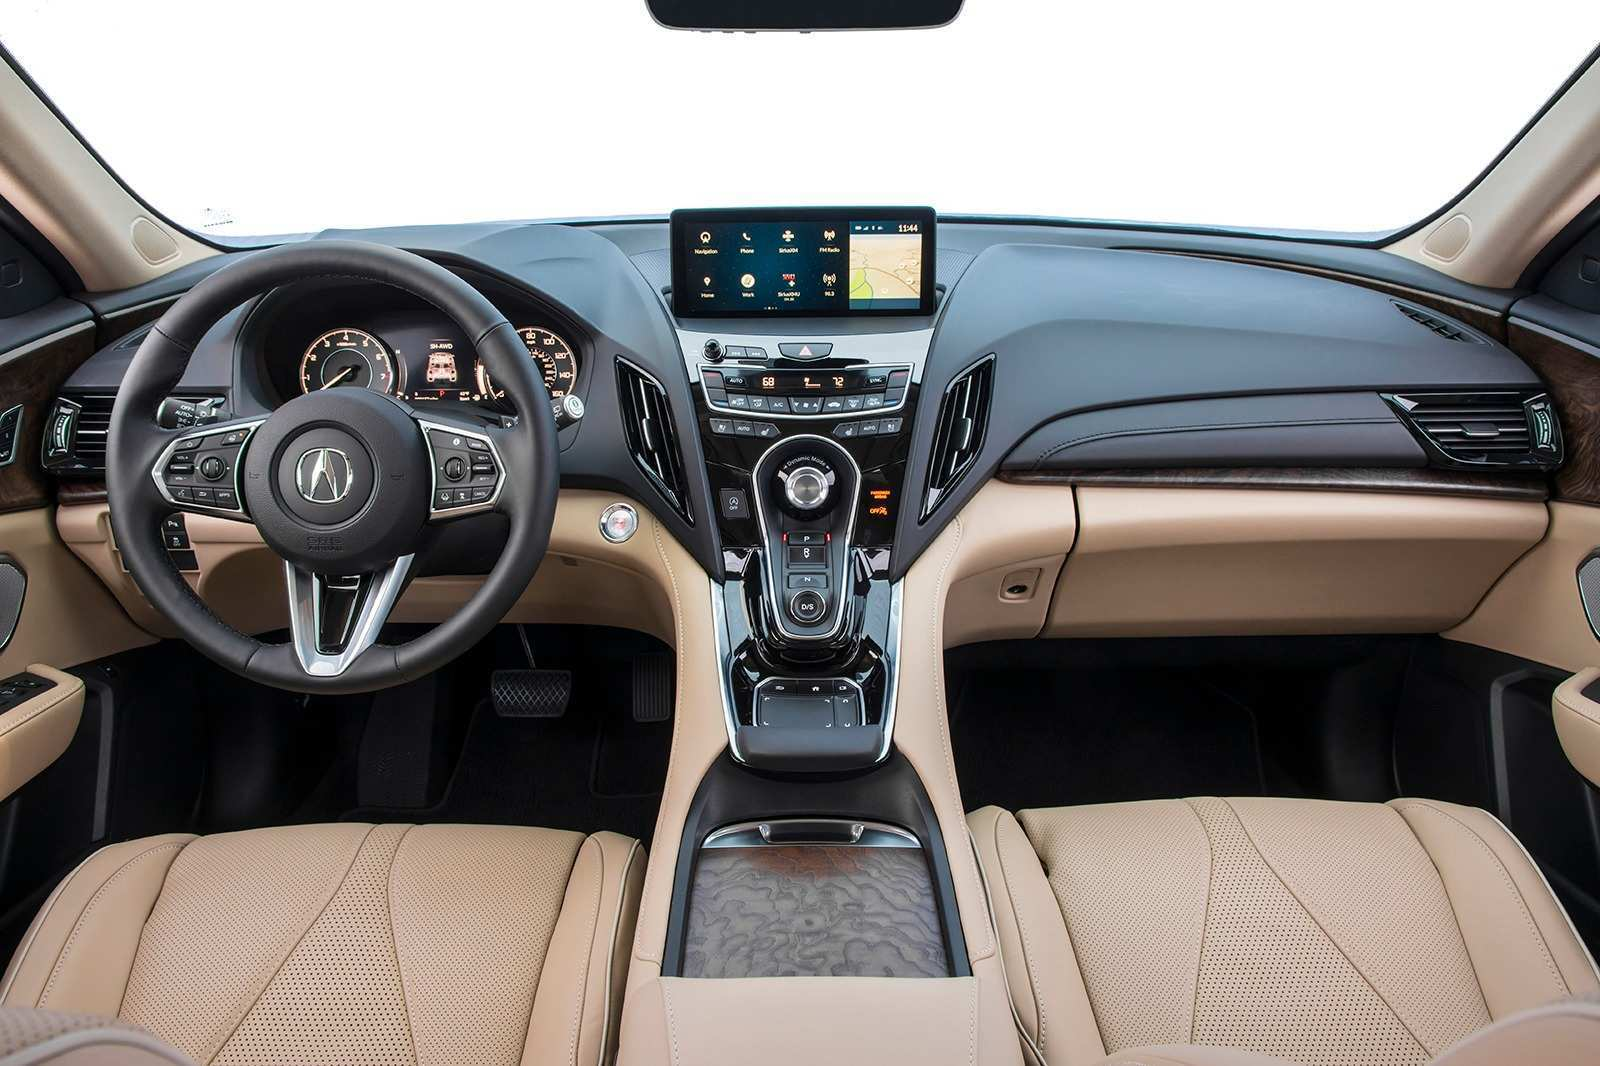 76 Gallery of 2019 Acura Rdx Lease Prices Release Date Engine by 2019 Acura Rdx Lease Prices Release Date